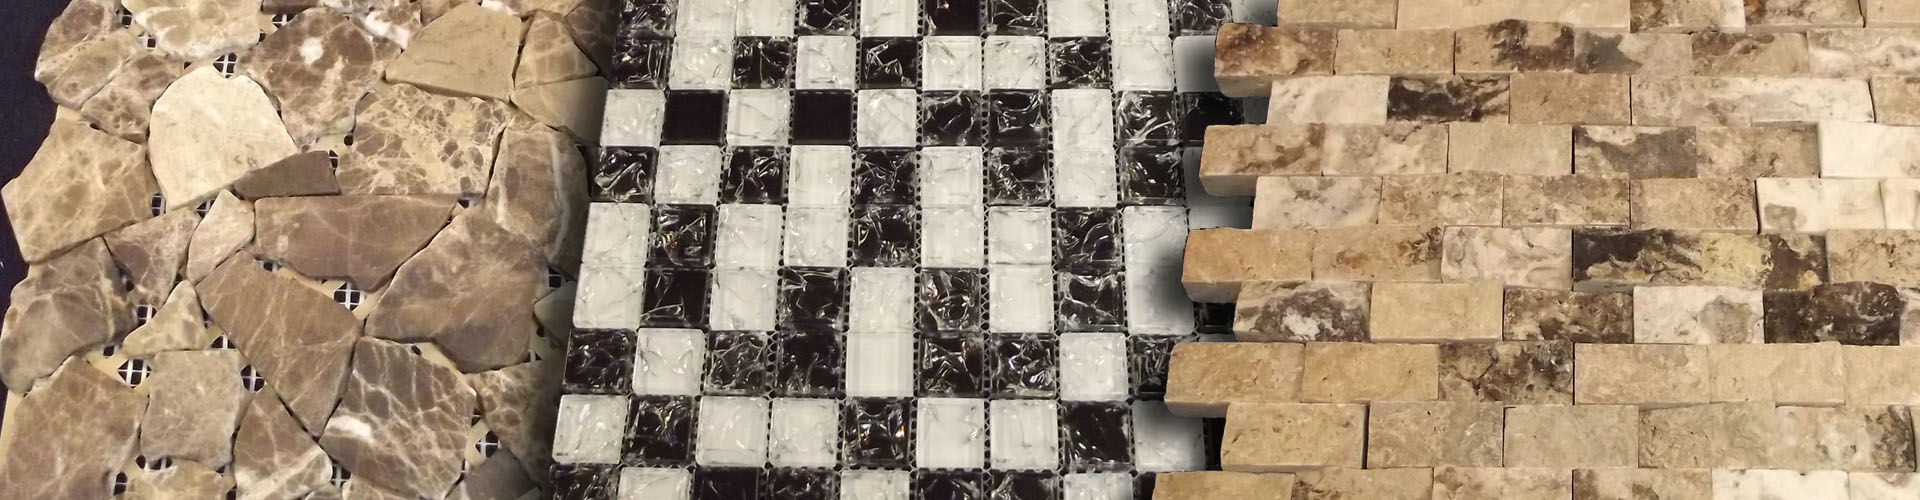 cost less carpet tile and stone mosaics